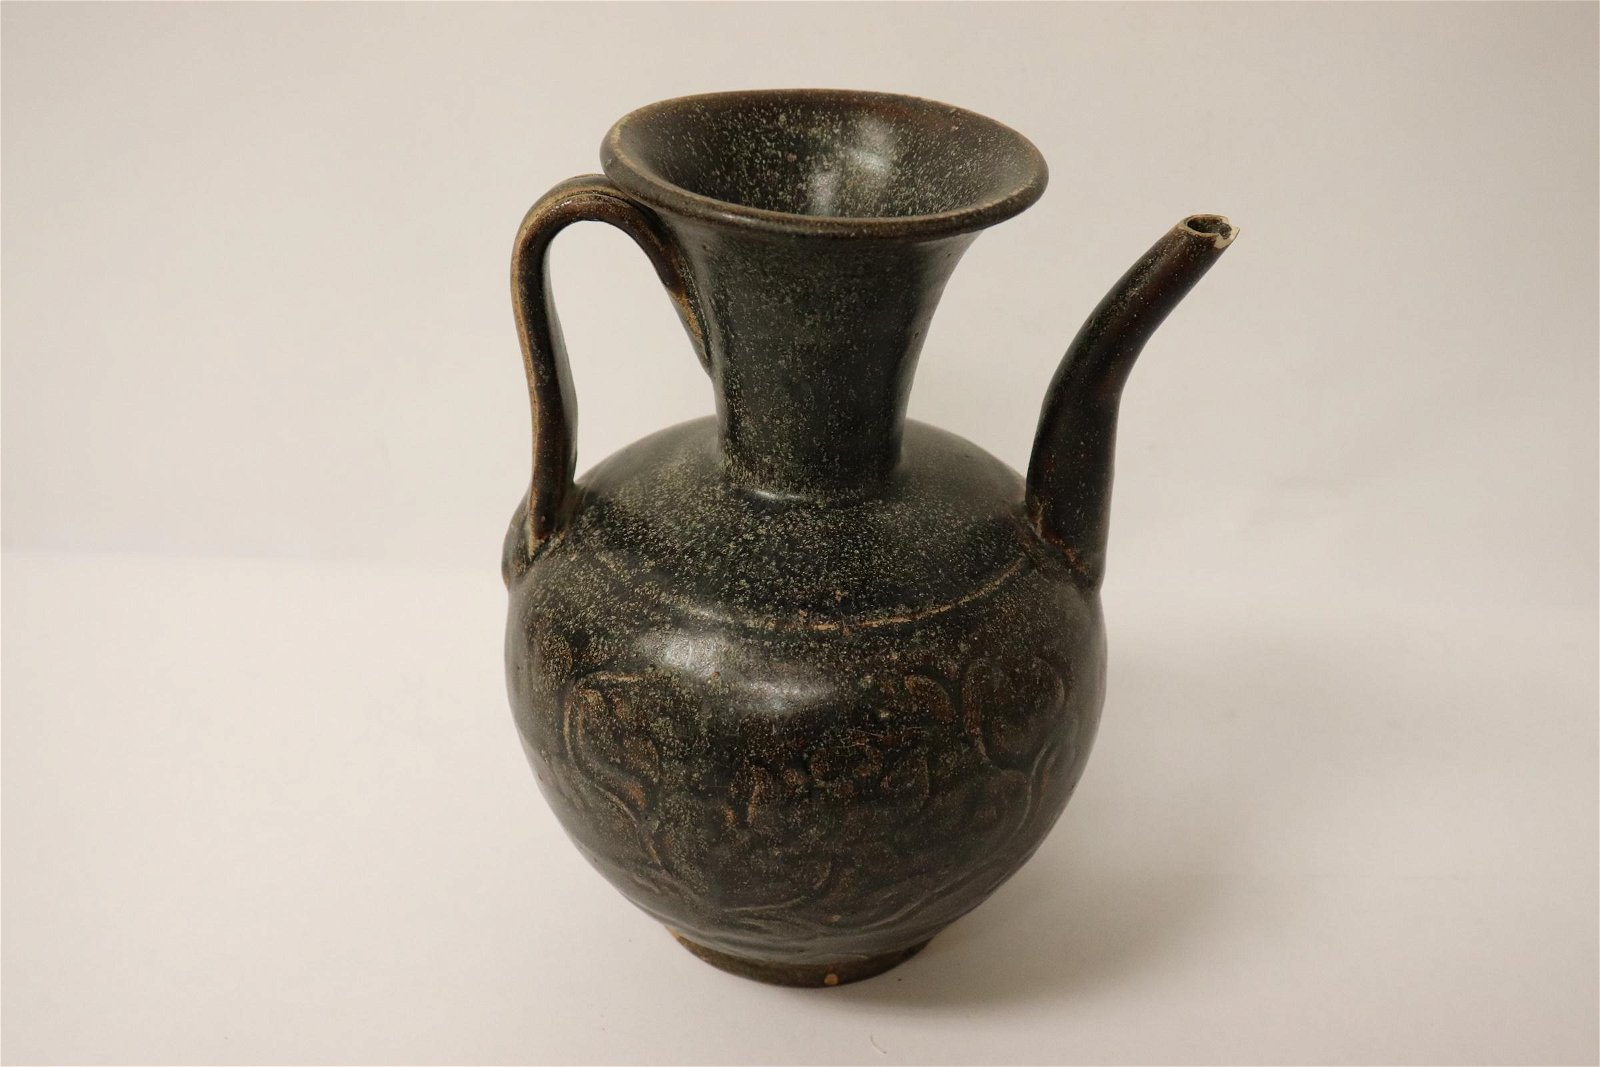 A Song style brown glazed wine server